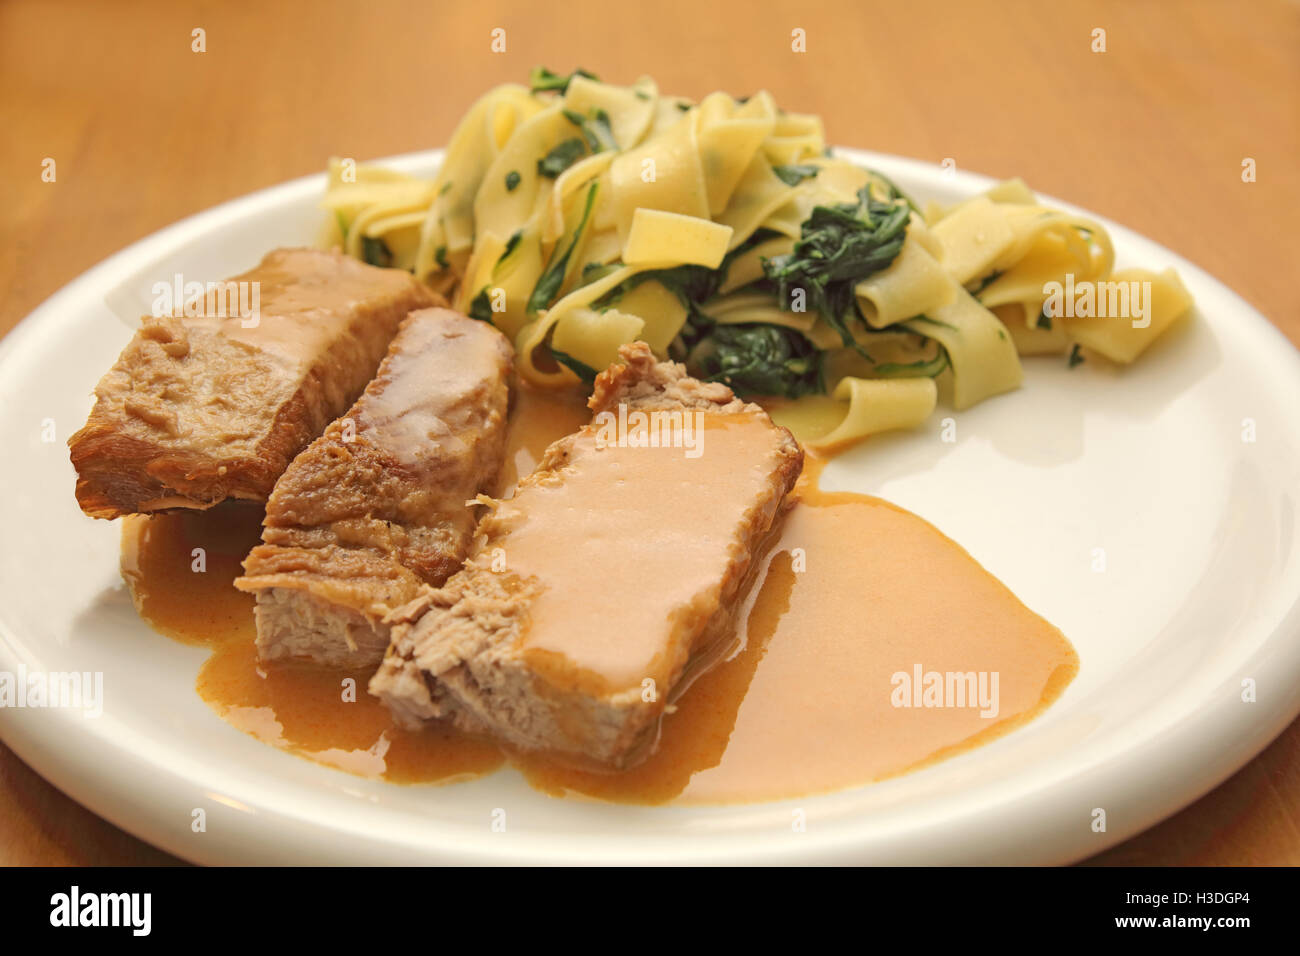 Veal roast with Tagliatelle noodles Stock Photo